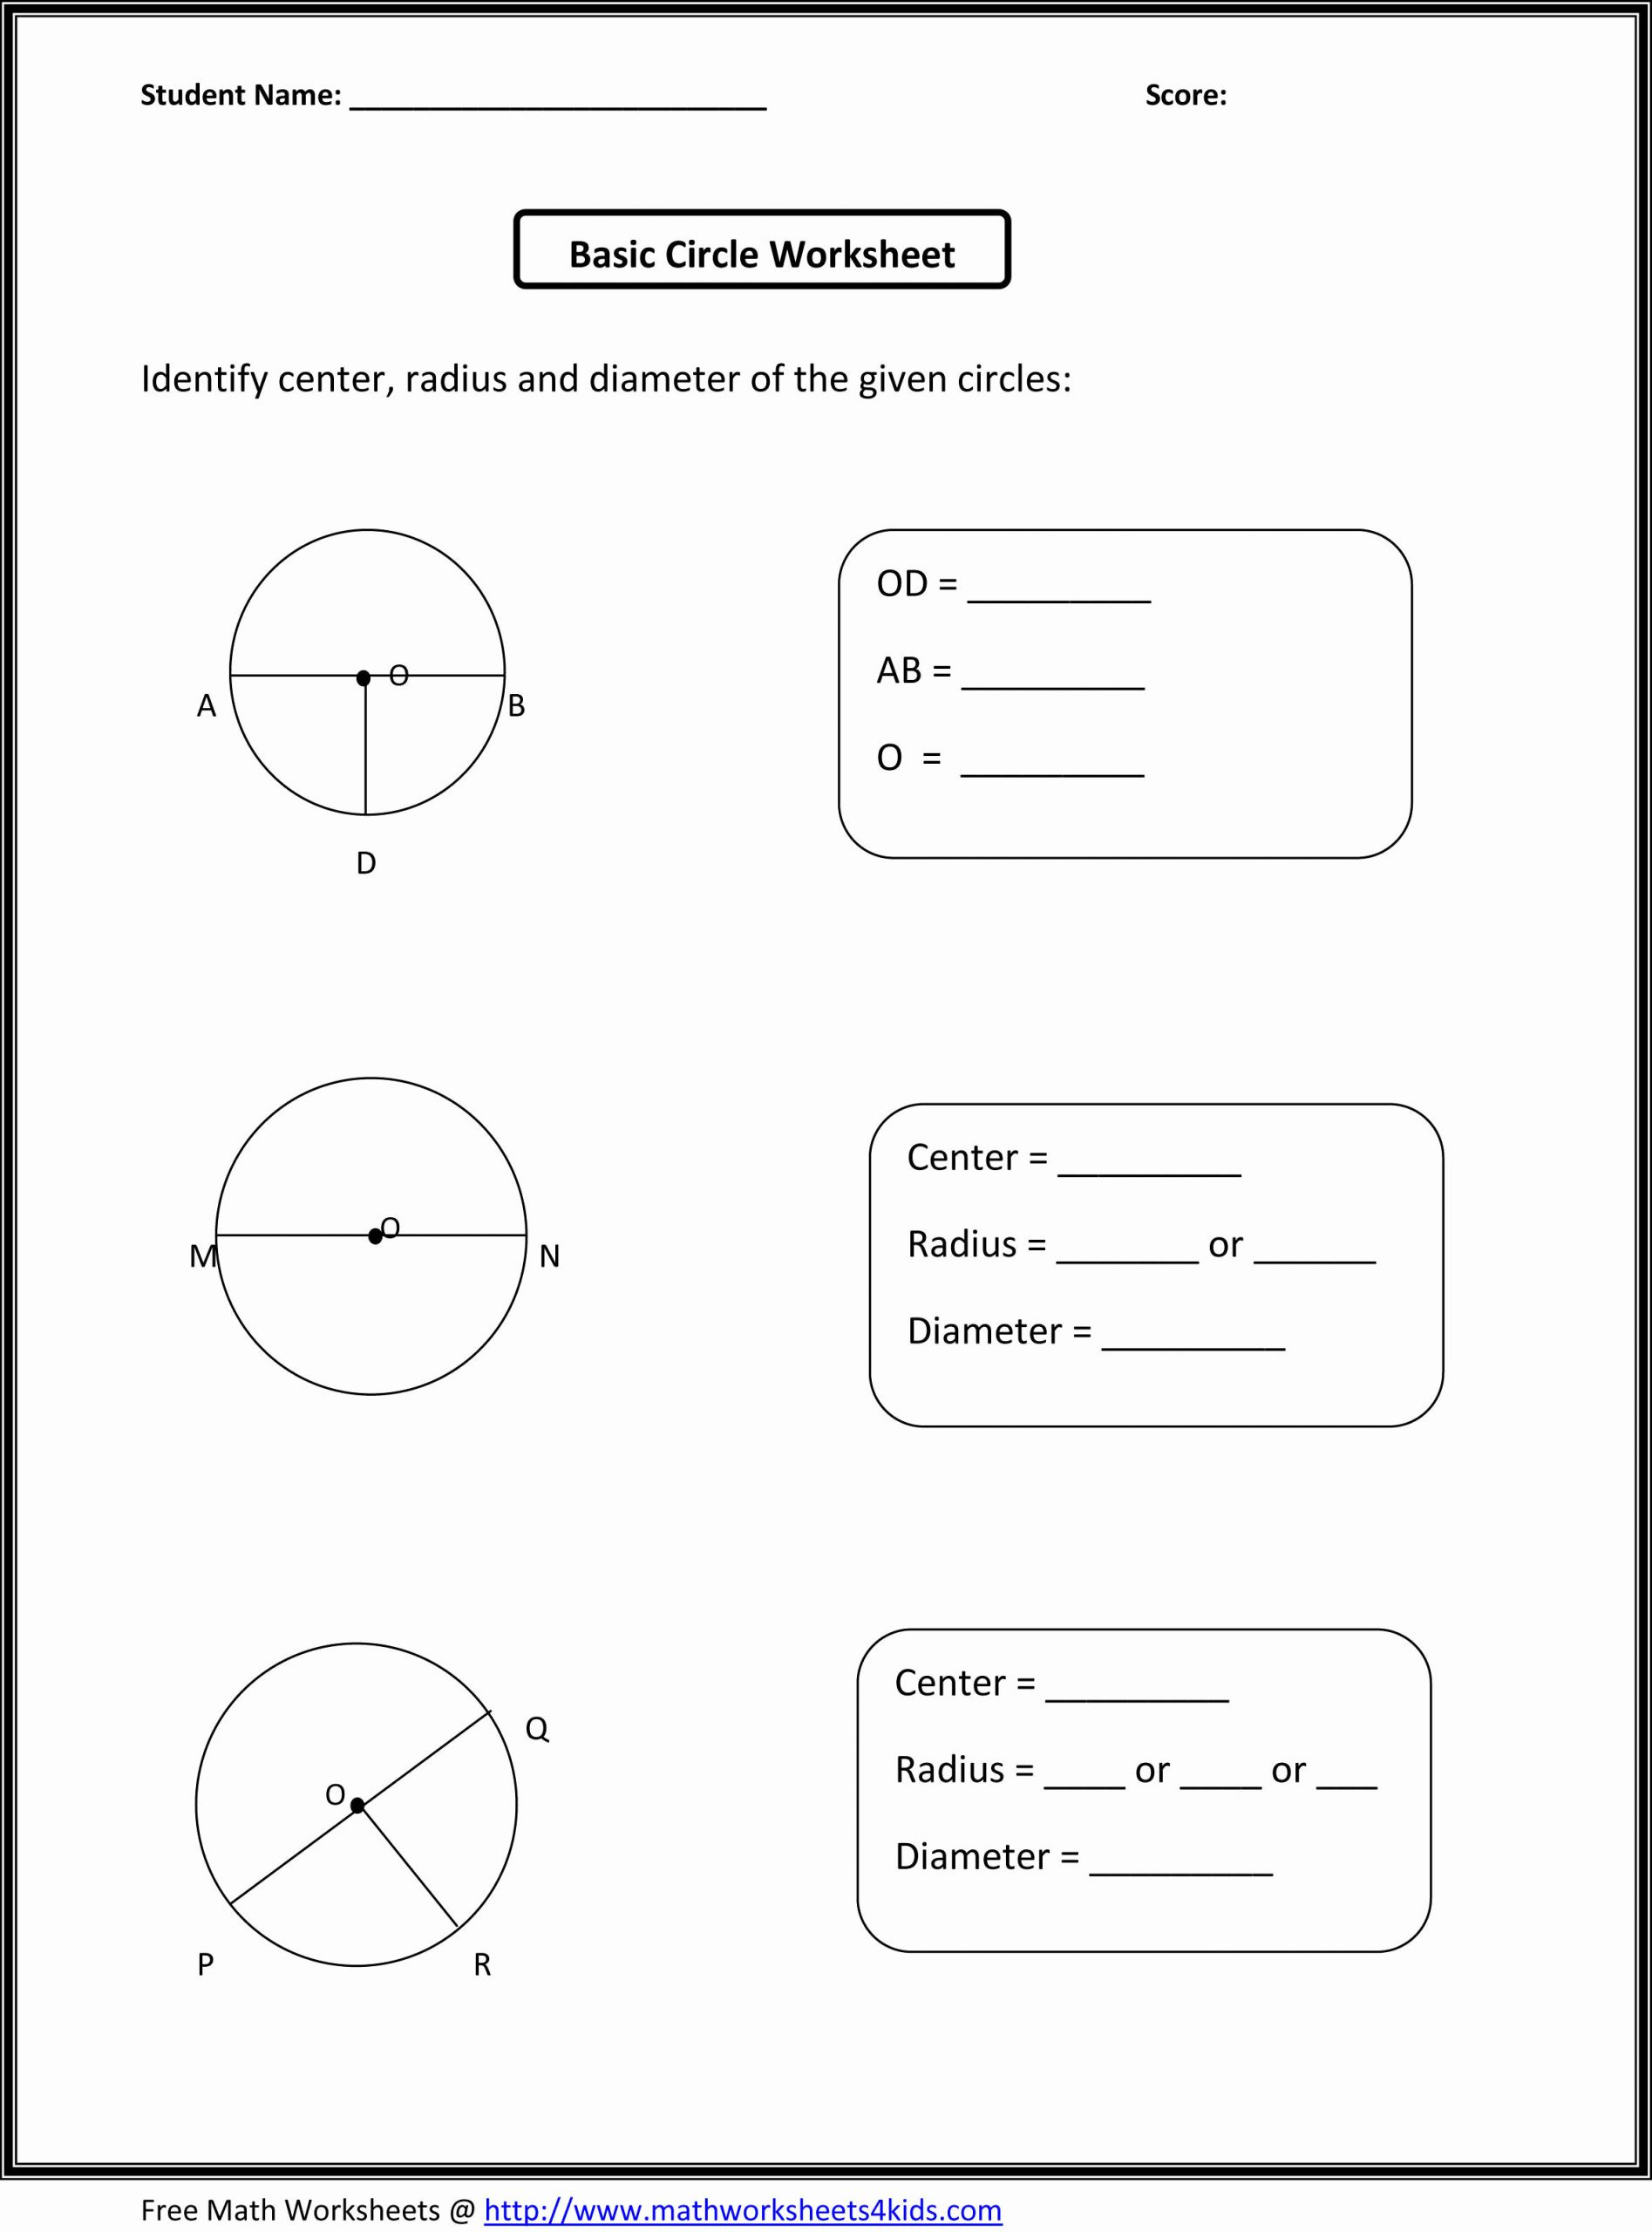 hight resolution of 4 Free Math Worksheets Third Grade 3 Measurement Metric Units Capacity L Ml  - apocalomegaproductions.com